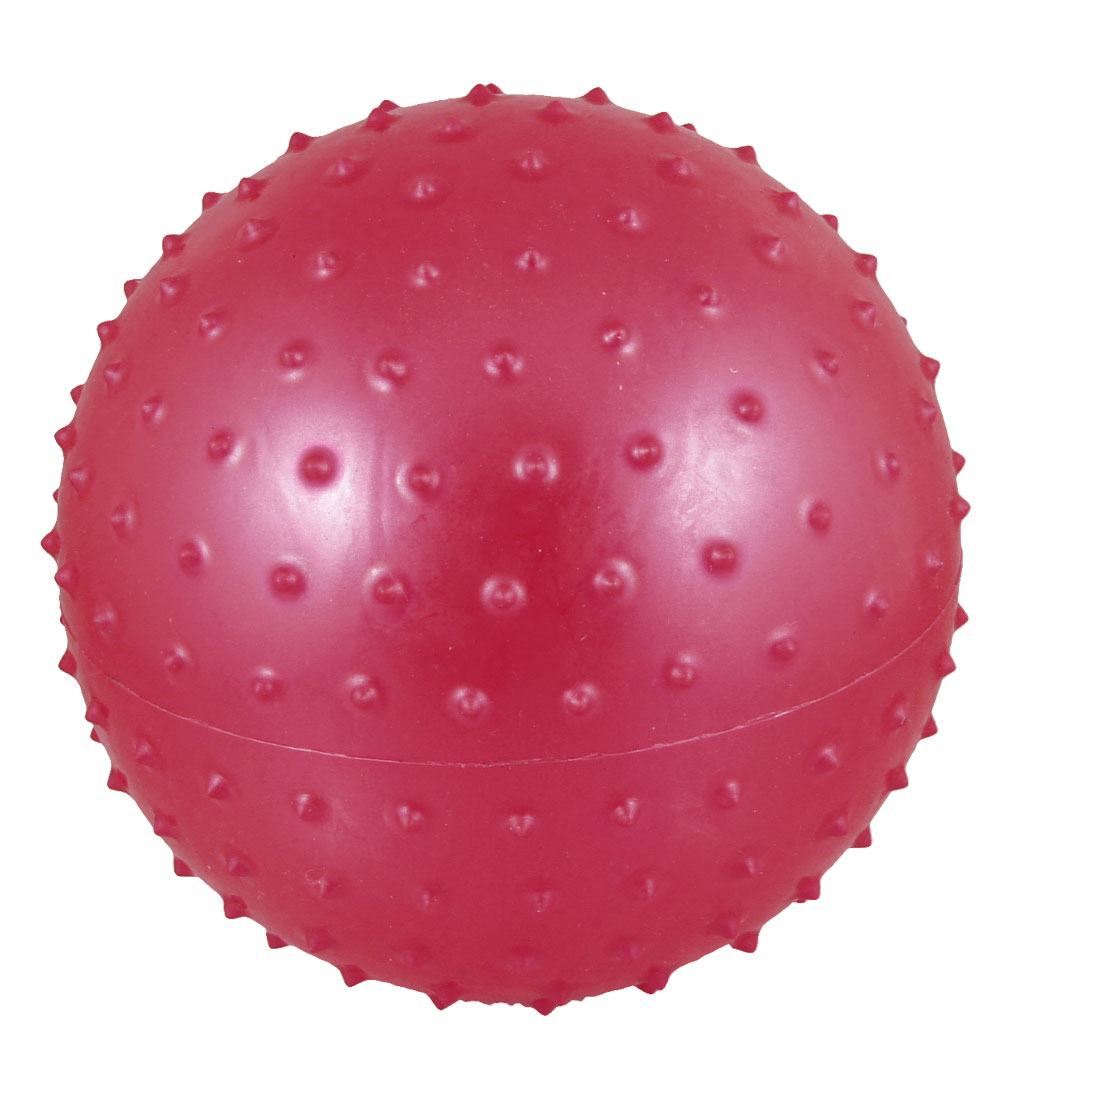 "6.3"" Inflated Dia PVC Spiky Relaxing Massage Ball Toy Red for Kids"